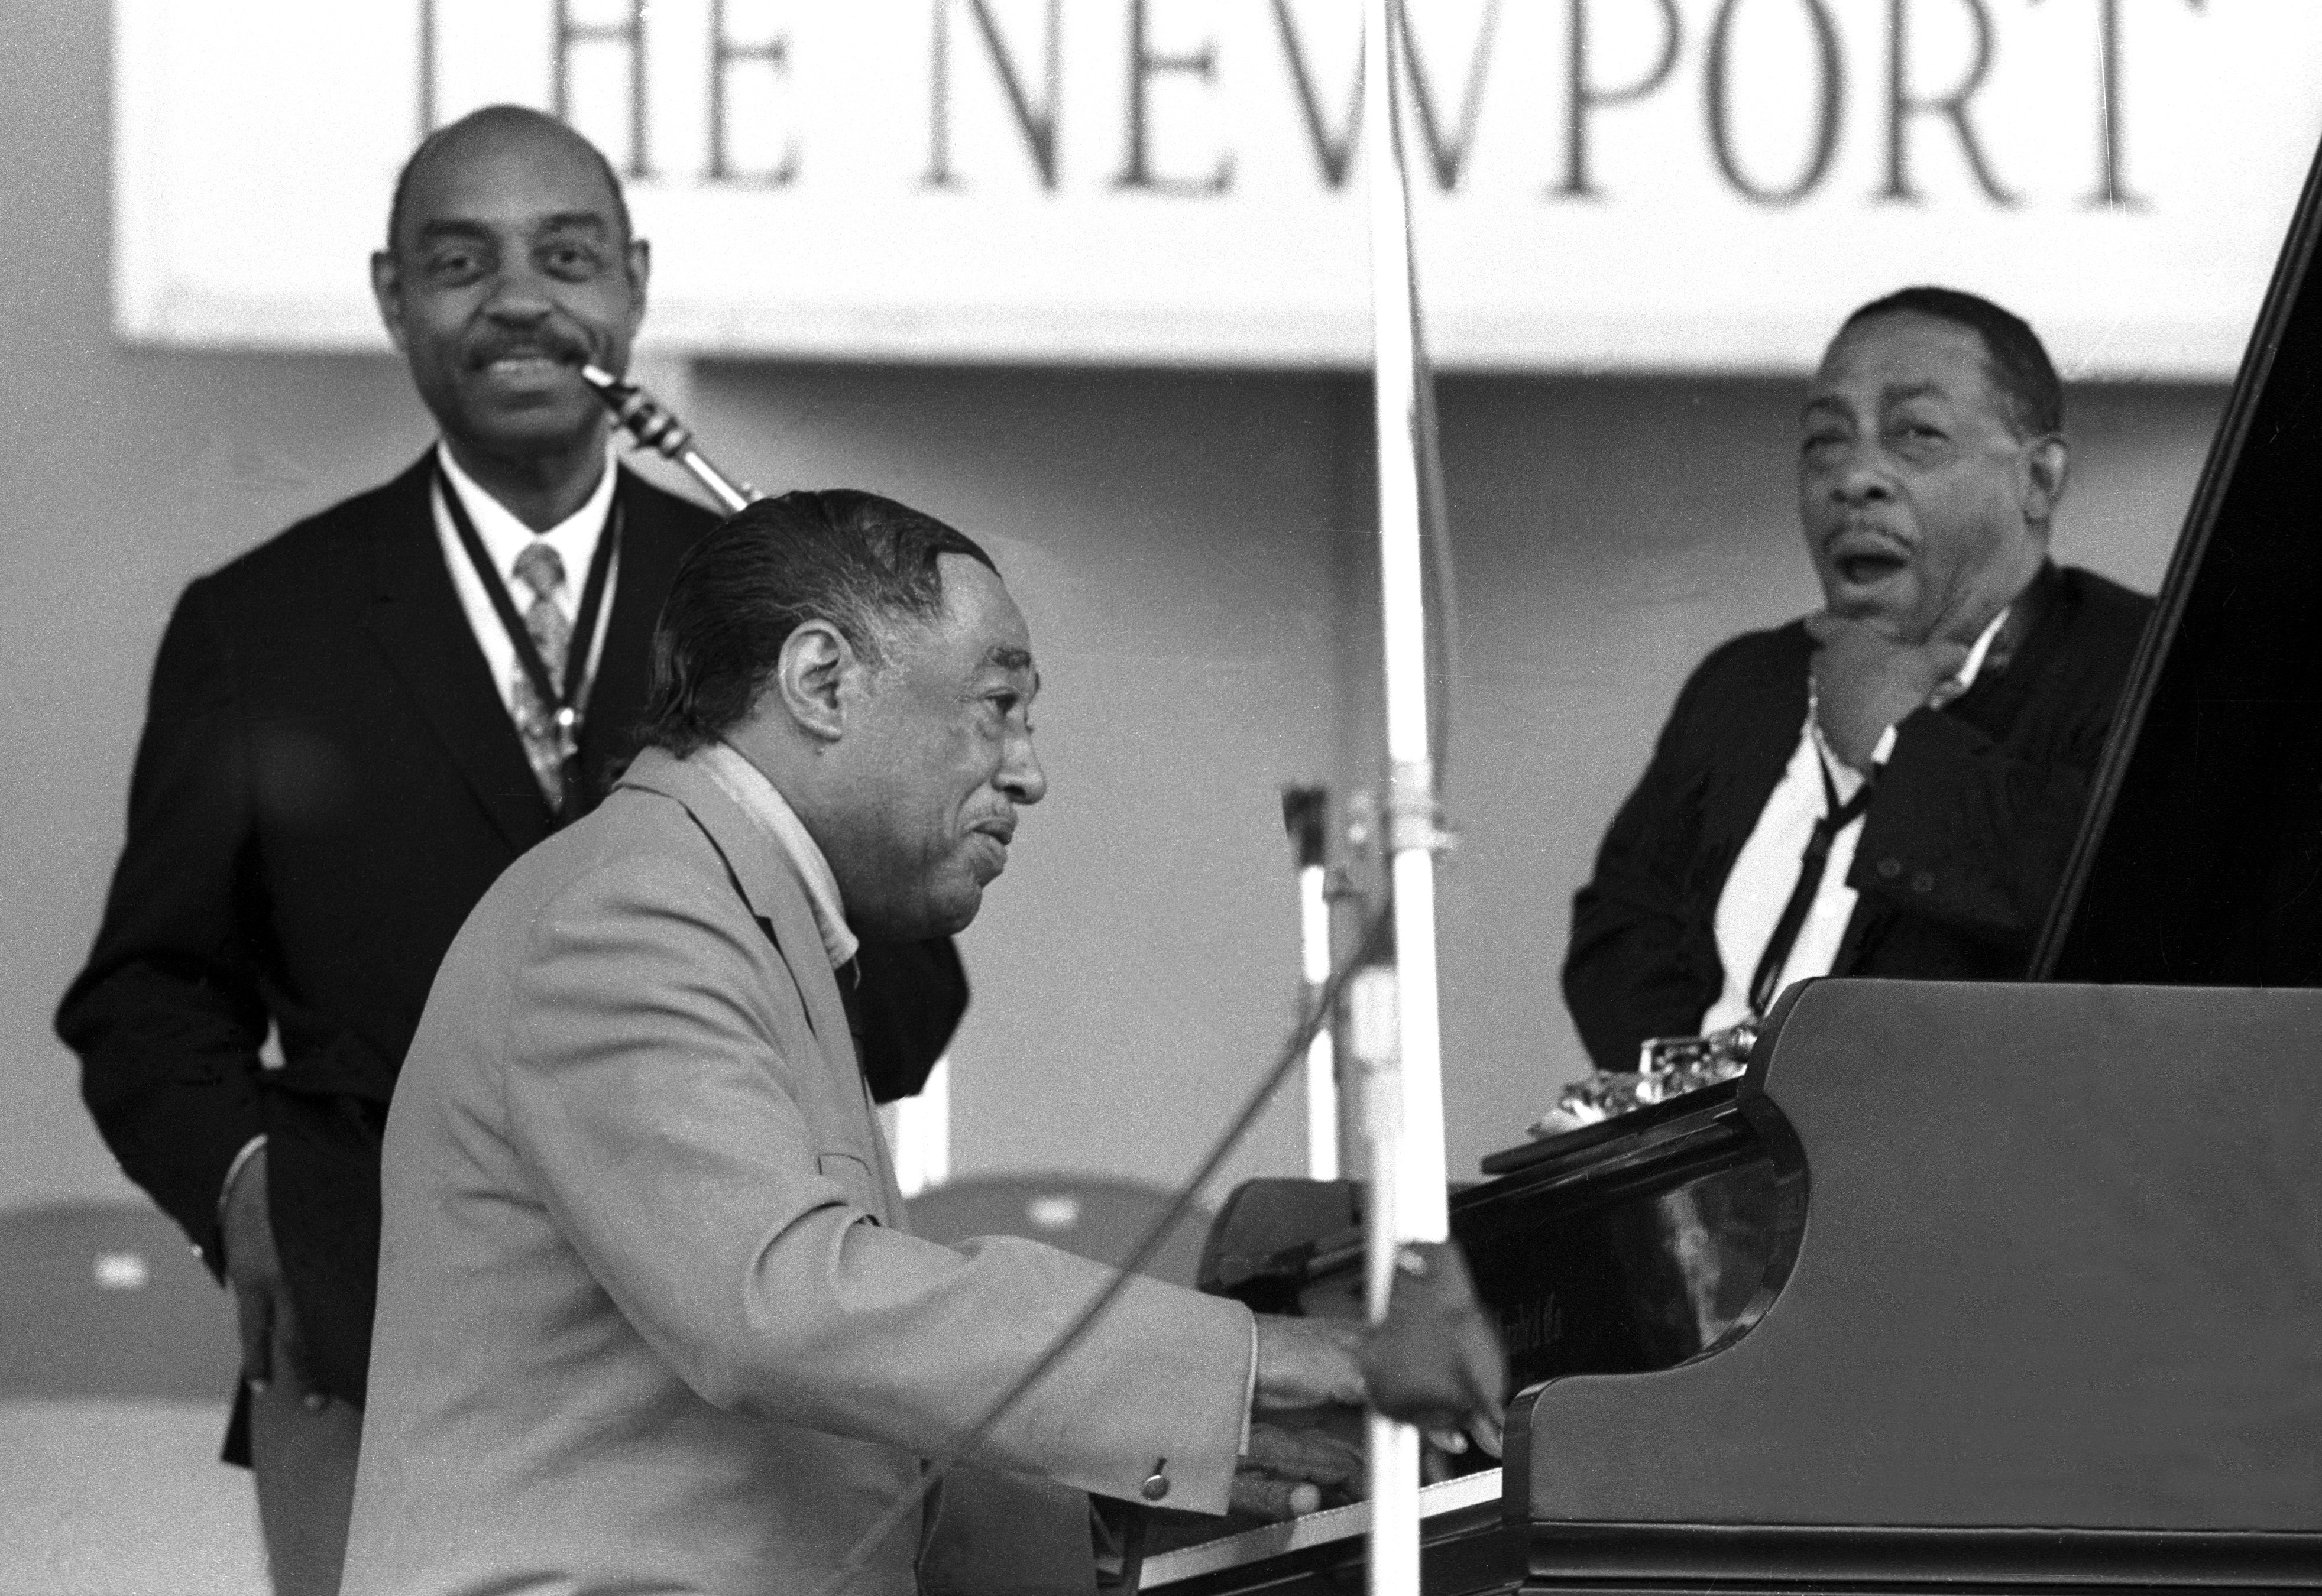 Johnny Hodges and Benny Carter perform with Duke Ellington and his orchestra onstage at the Newport Jazz Festival on July 6, 1968 in Newport, Rhode Island. (photo: Tom Copi/Michael Ochs Archives/Getty Images)